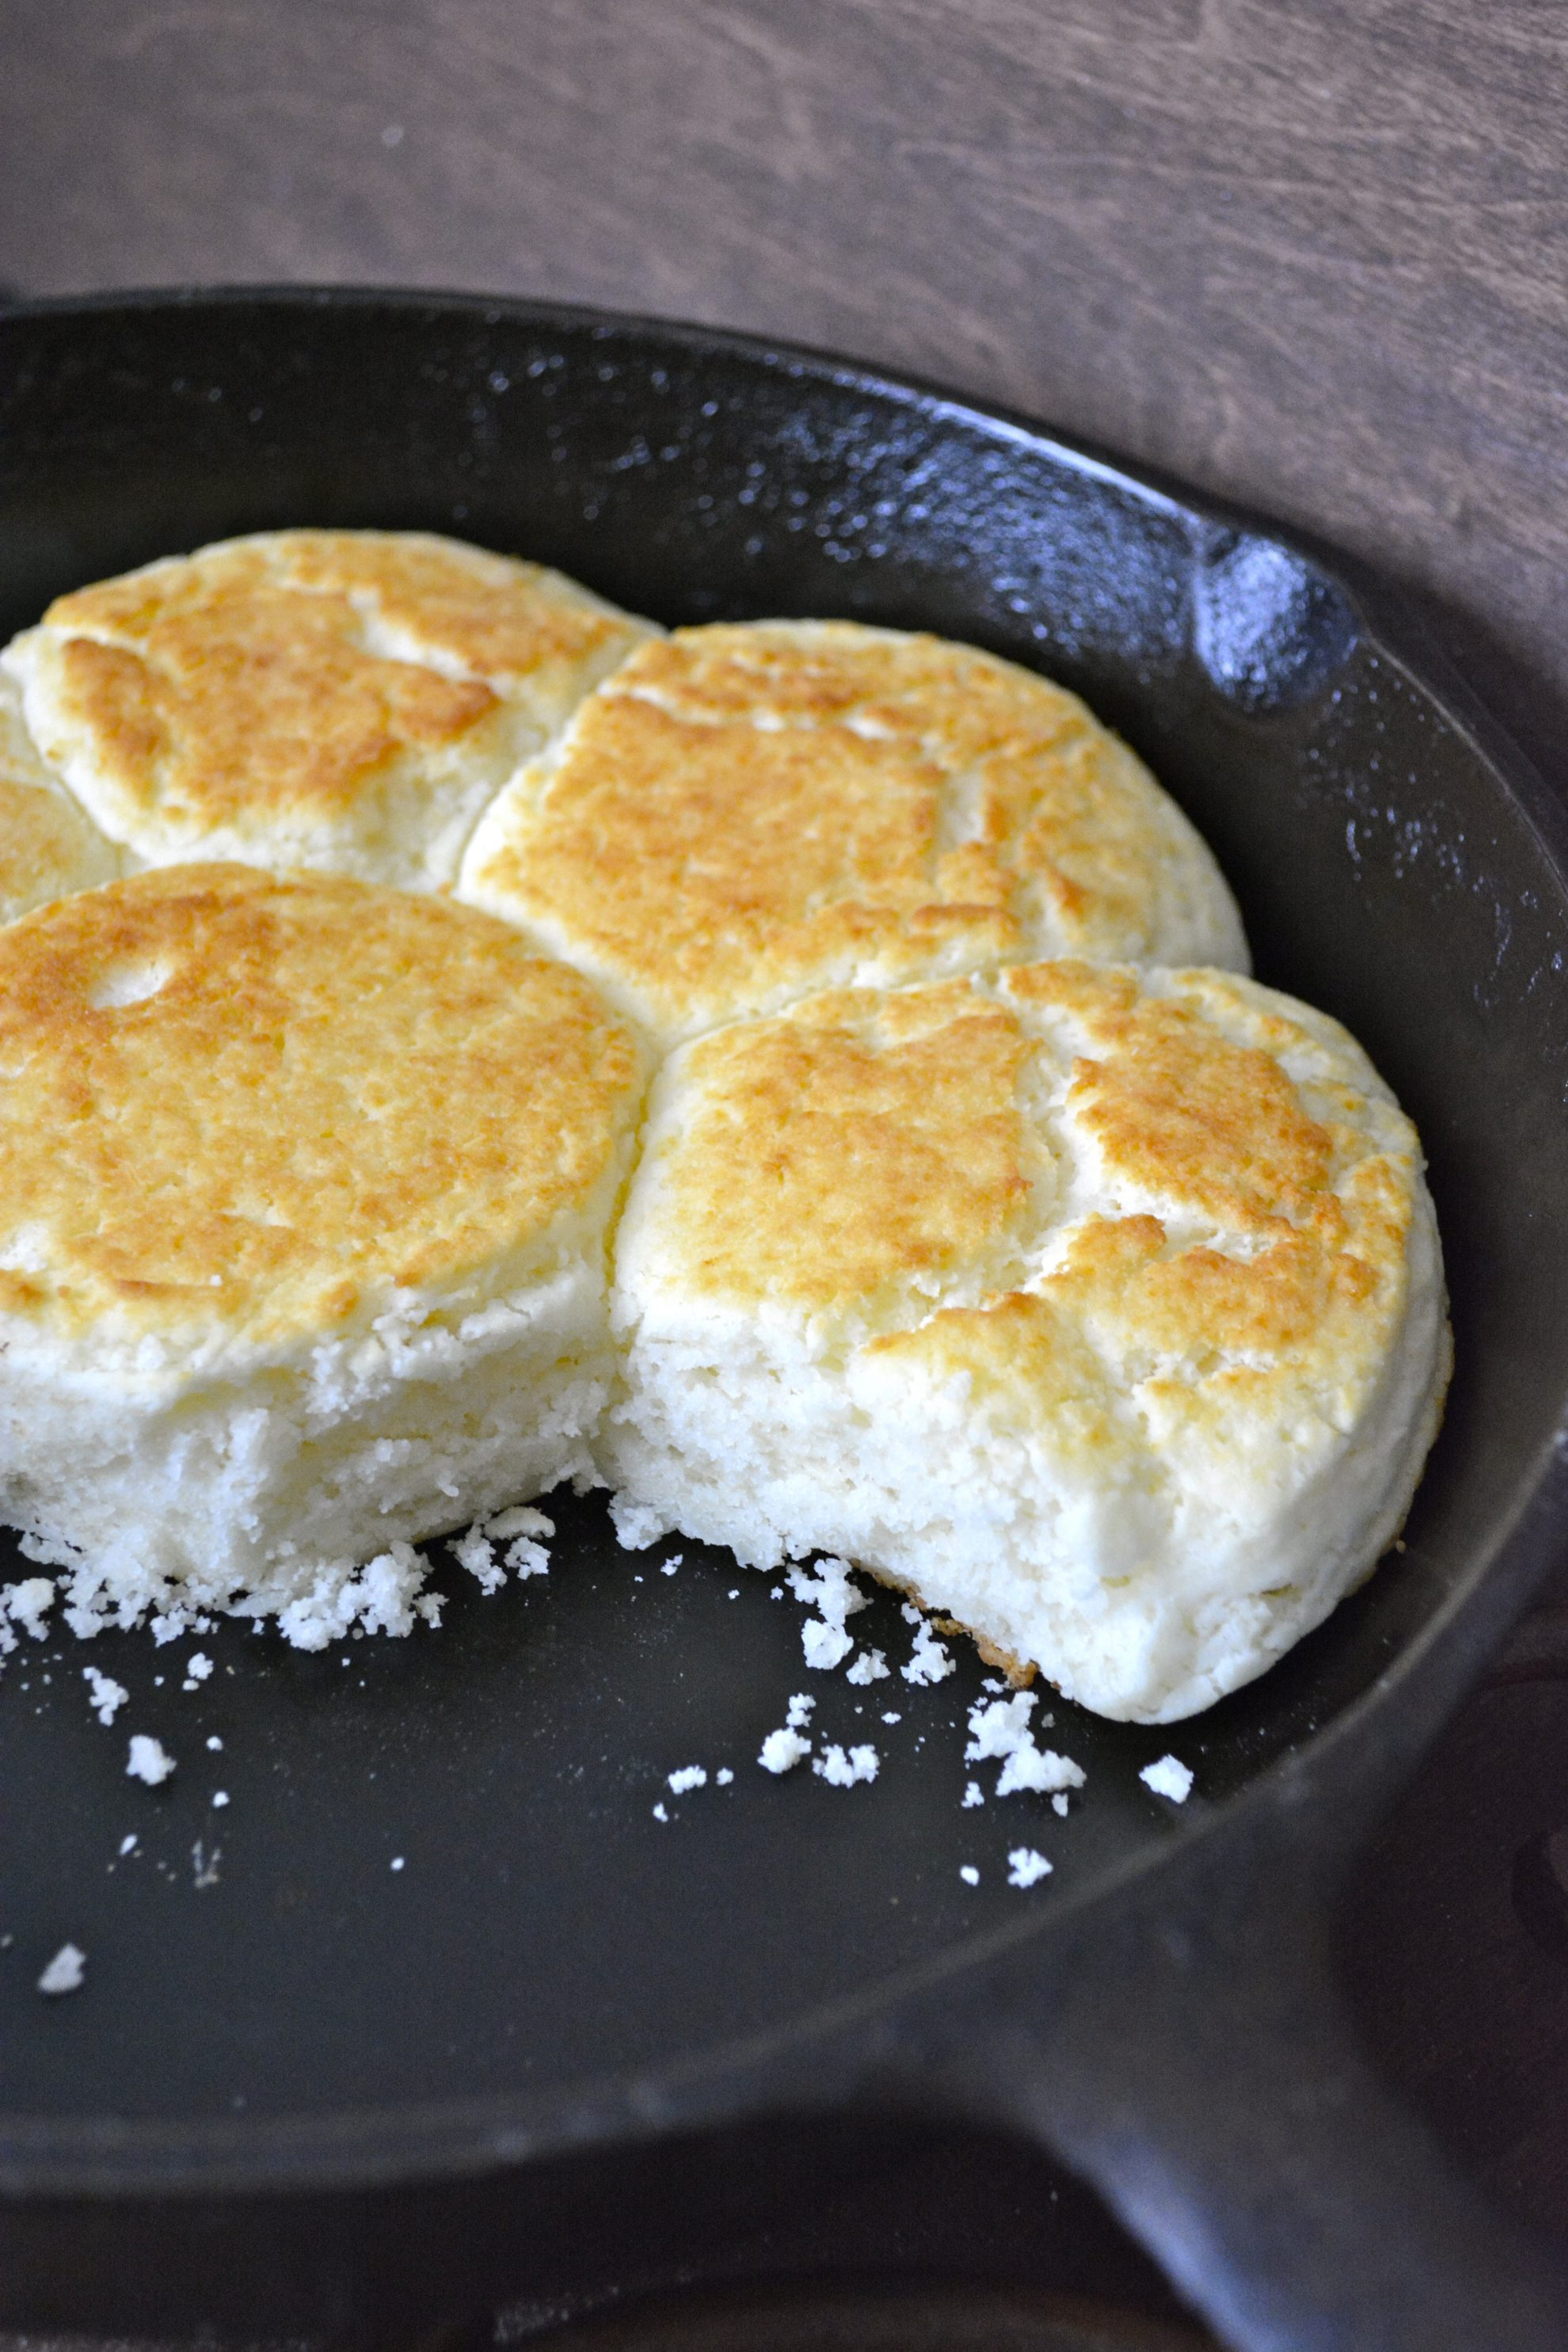 four gluten free biscuits in a cast iron skillet